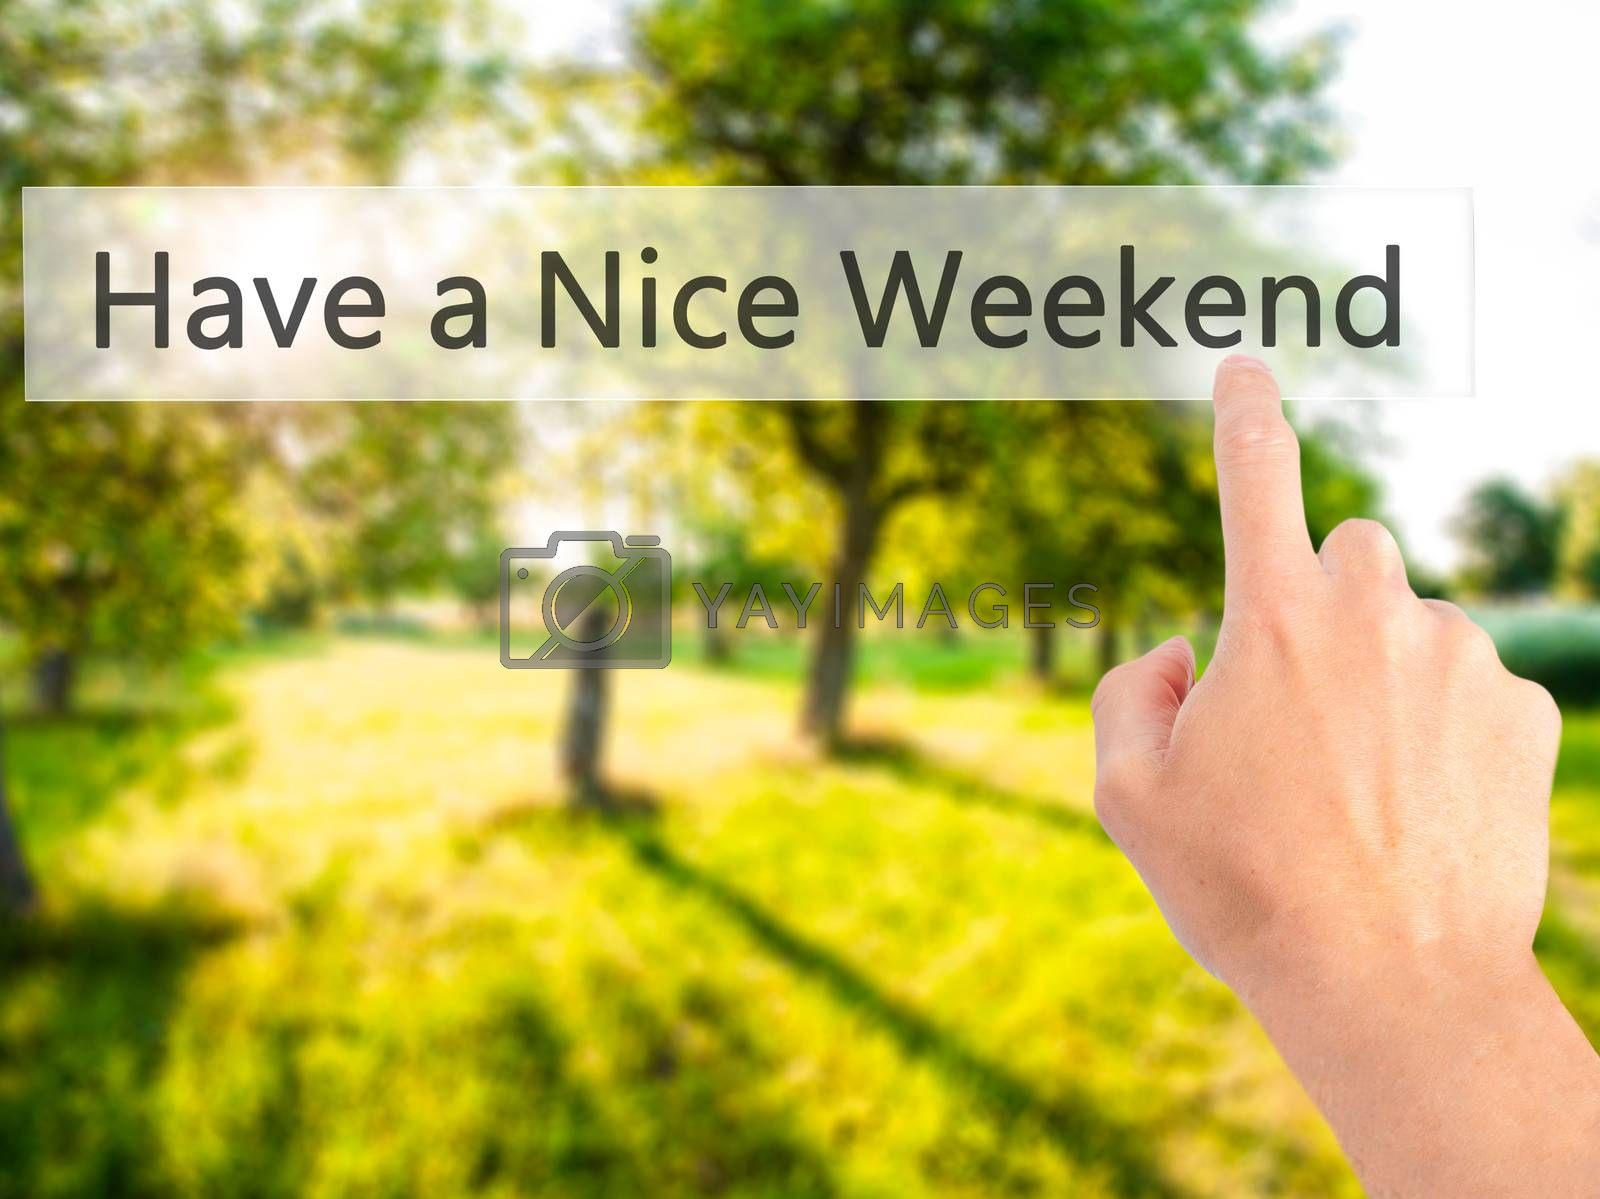 Have a Nice Weekend - Hand pressing a button on blurred backgrou by netsay.net